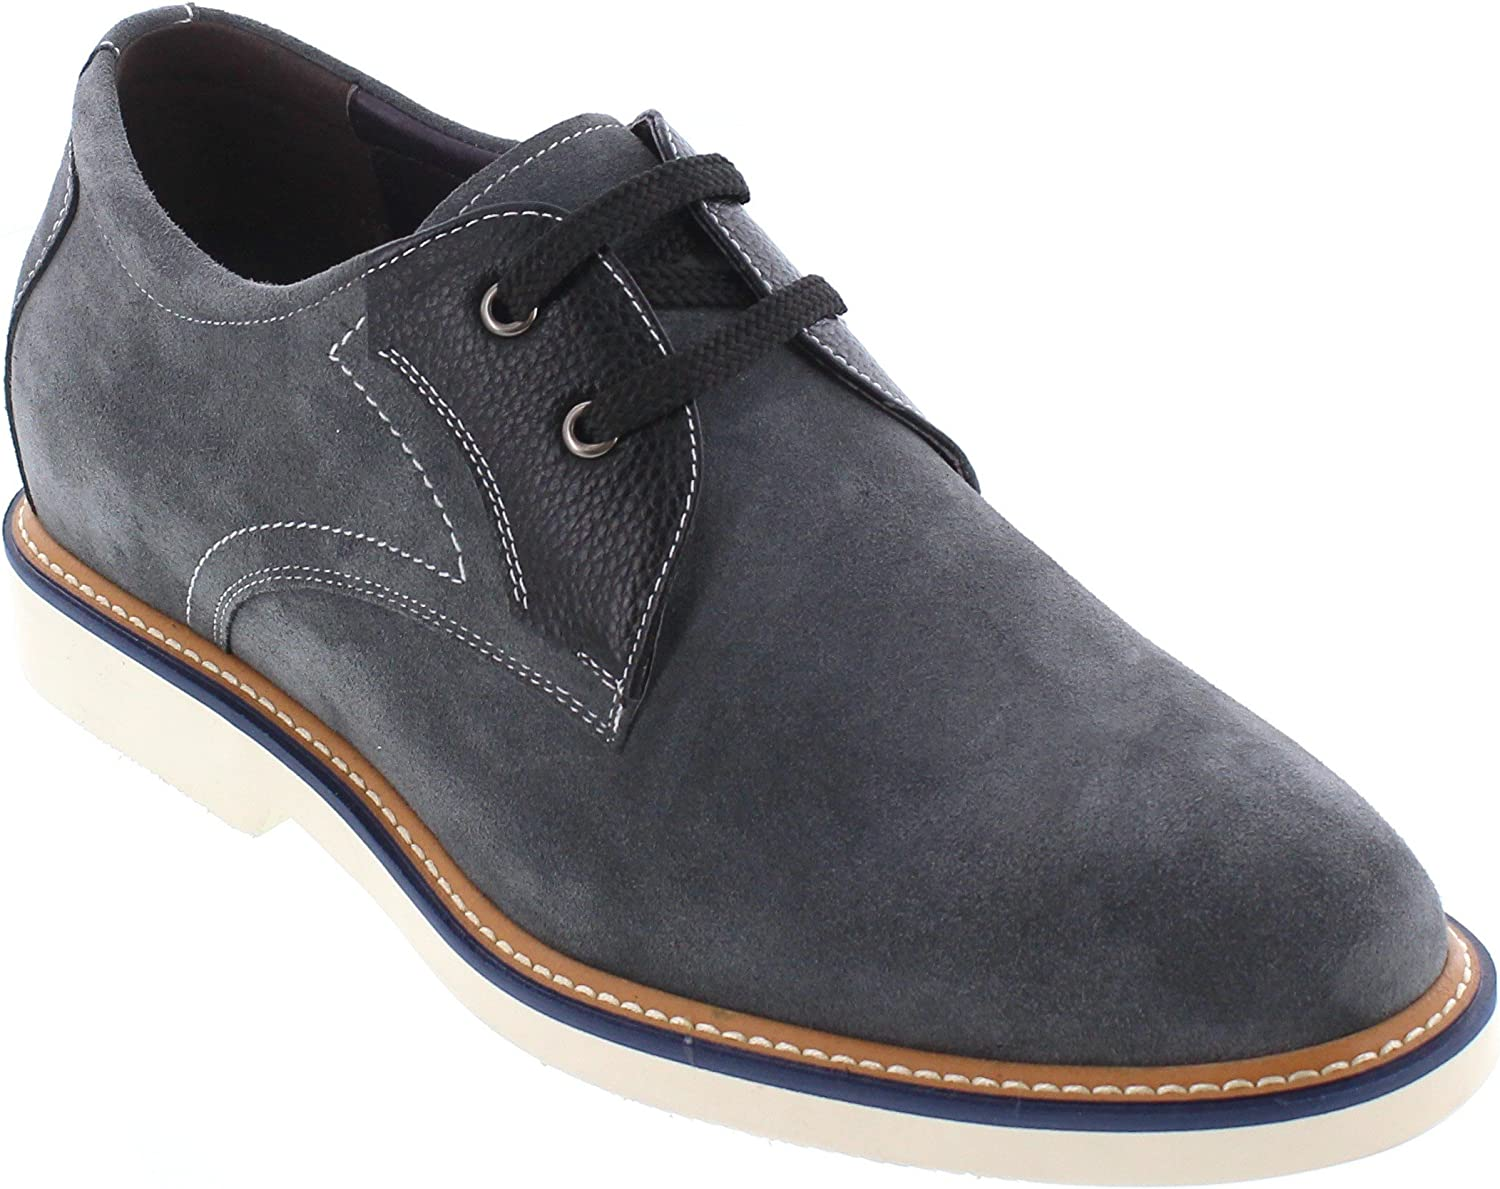 CALTO Men's Invisible Height Increasing Elevator shoes - Grey Black Nubuck Leather Lace-up Casual Oxfords - 2.8 Inches Taller - Y42023